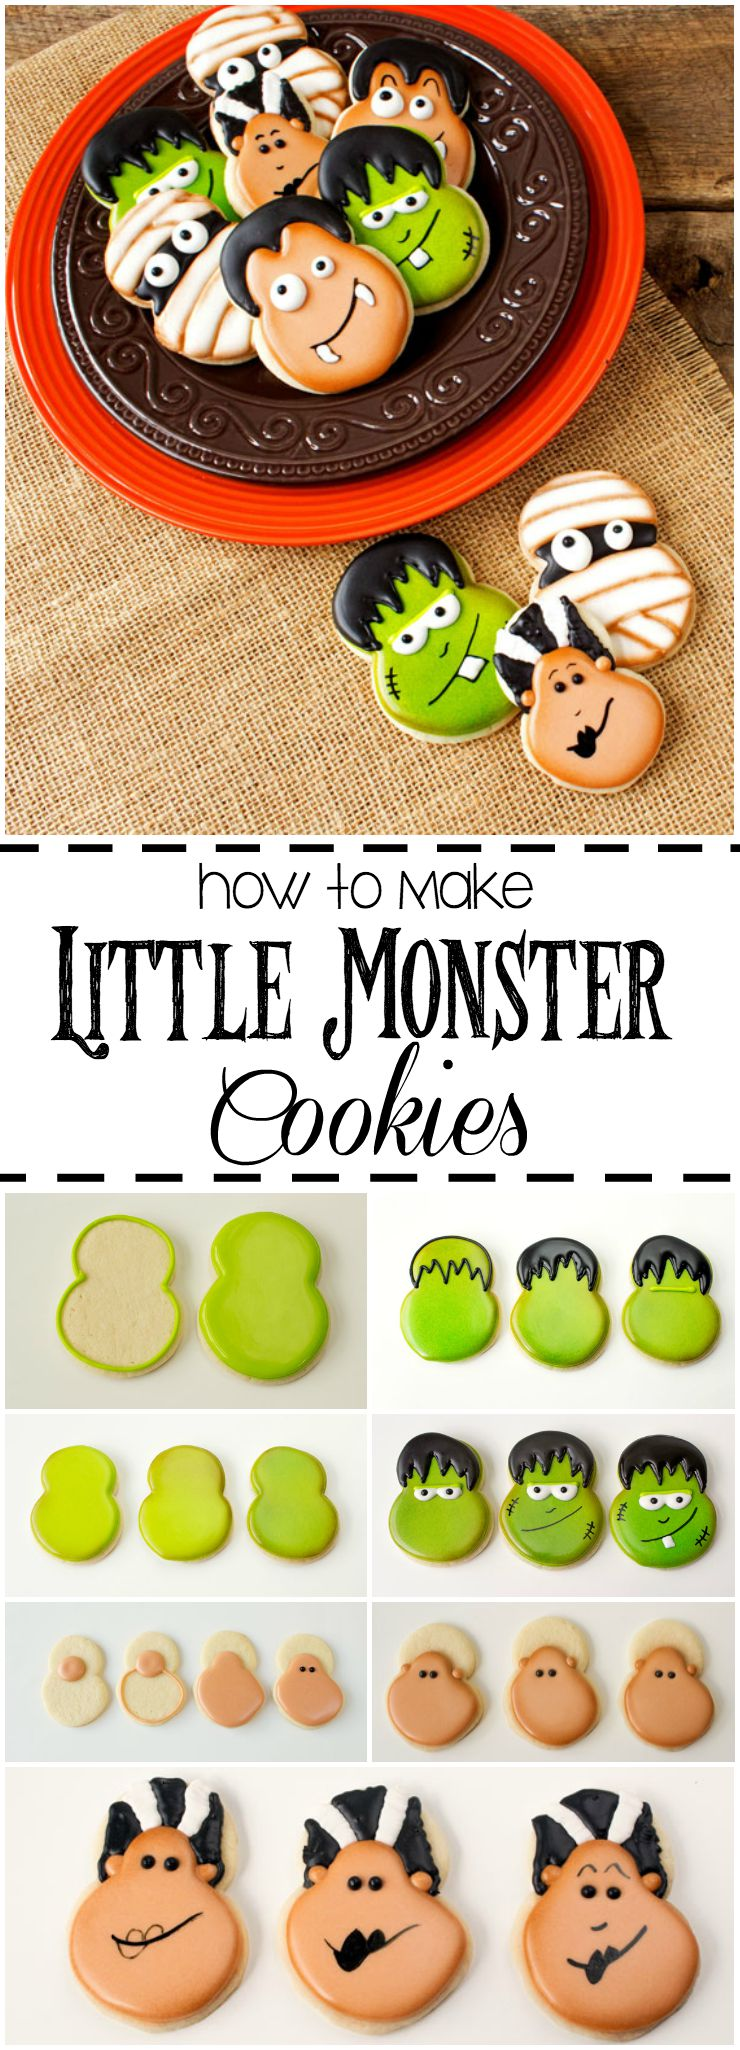 How to Make Little Monster Cookies via www.thebearfootbaker.com